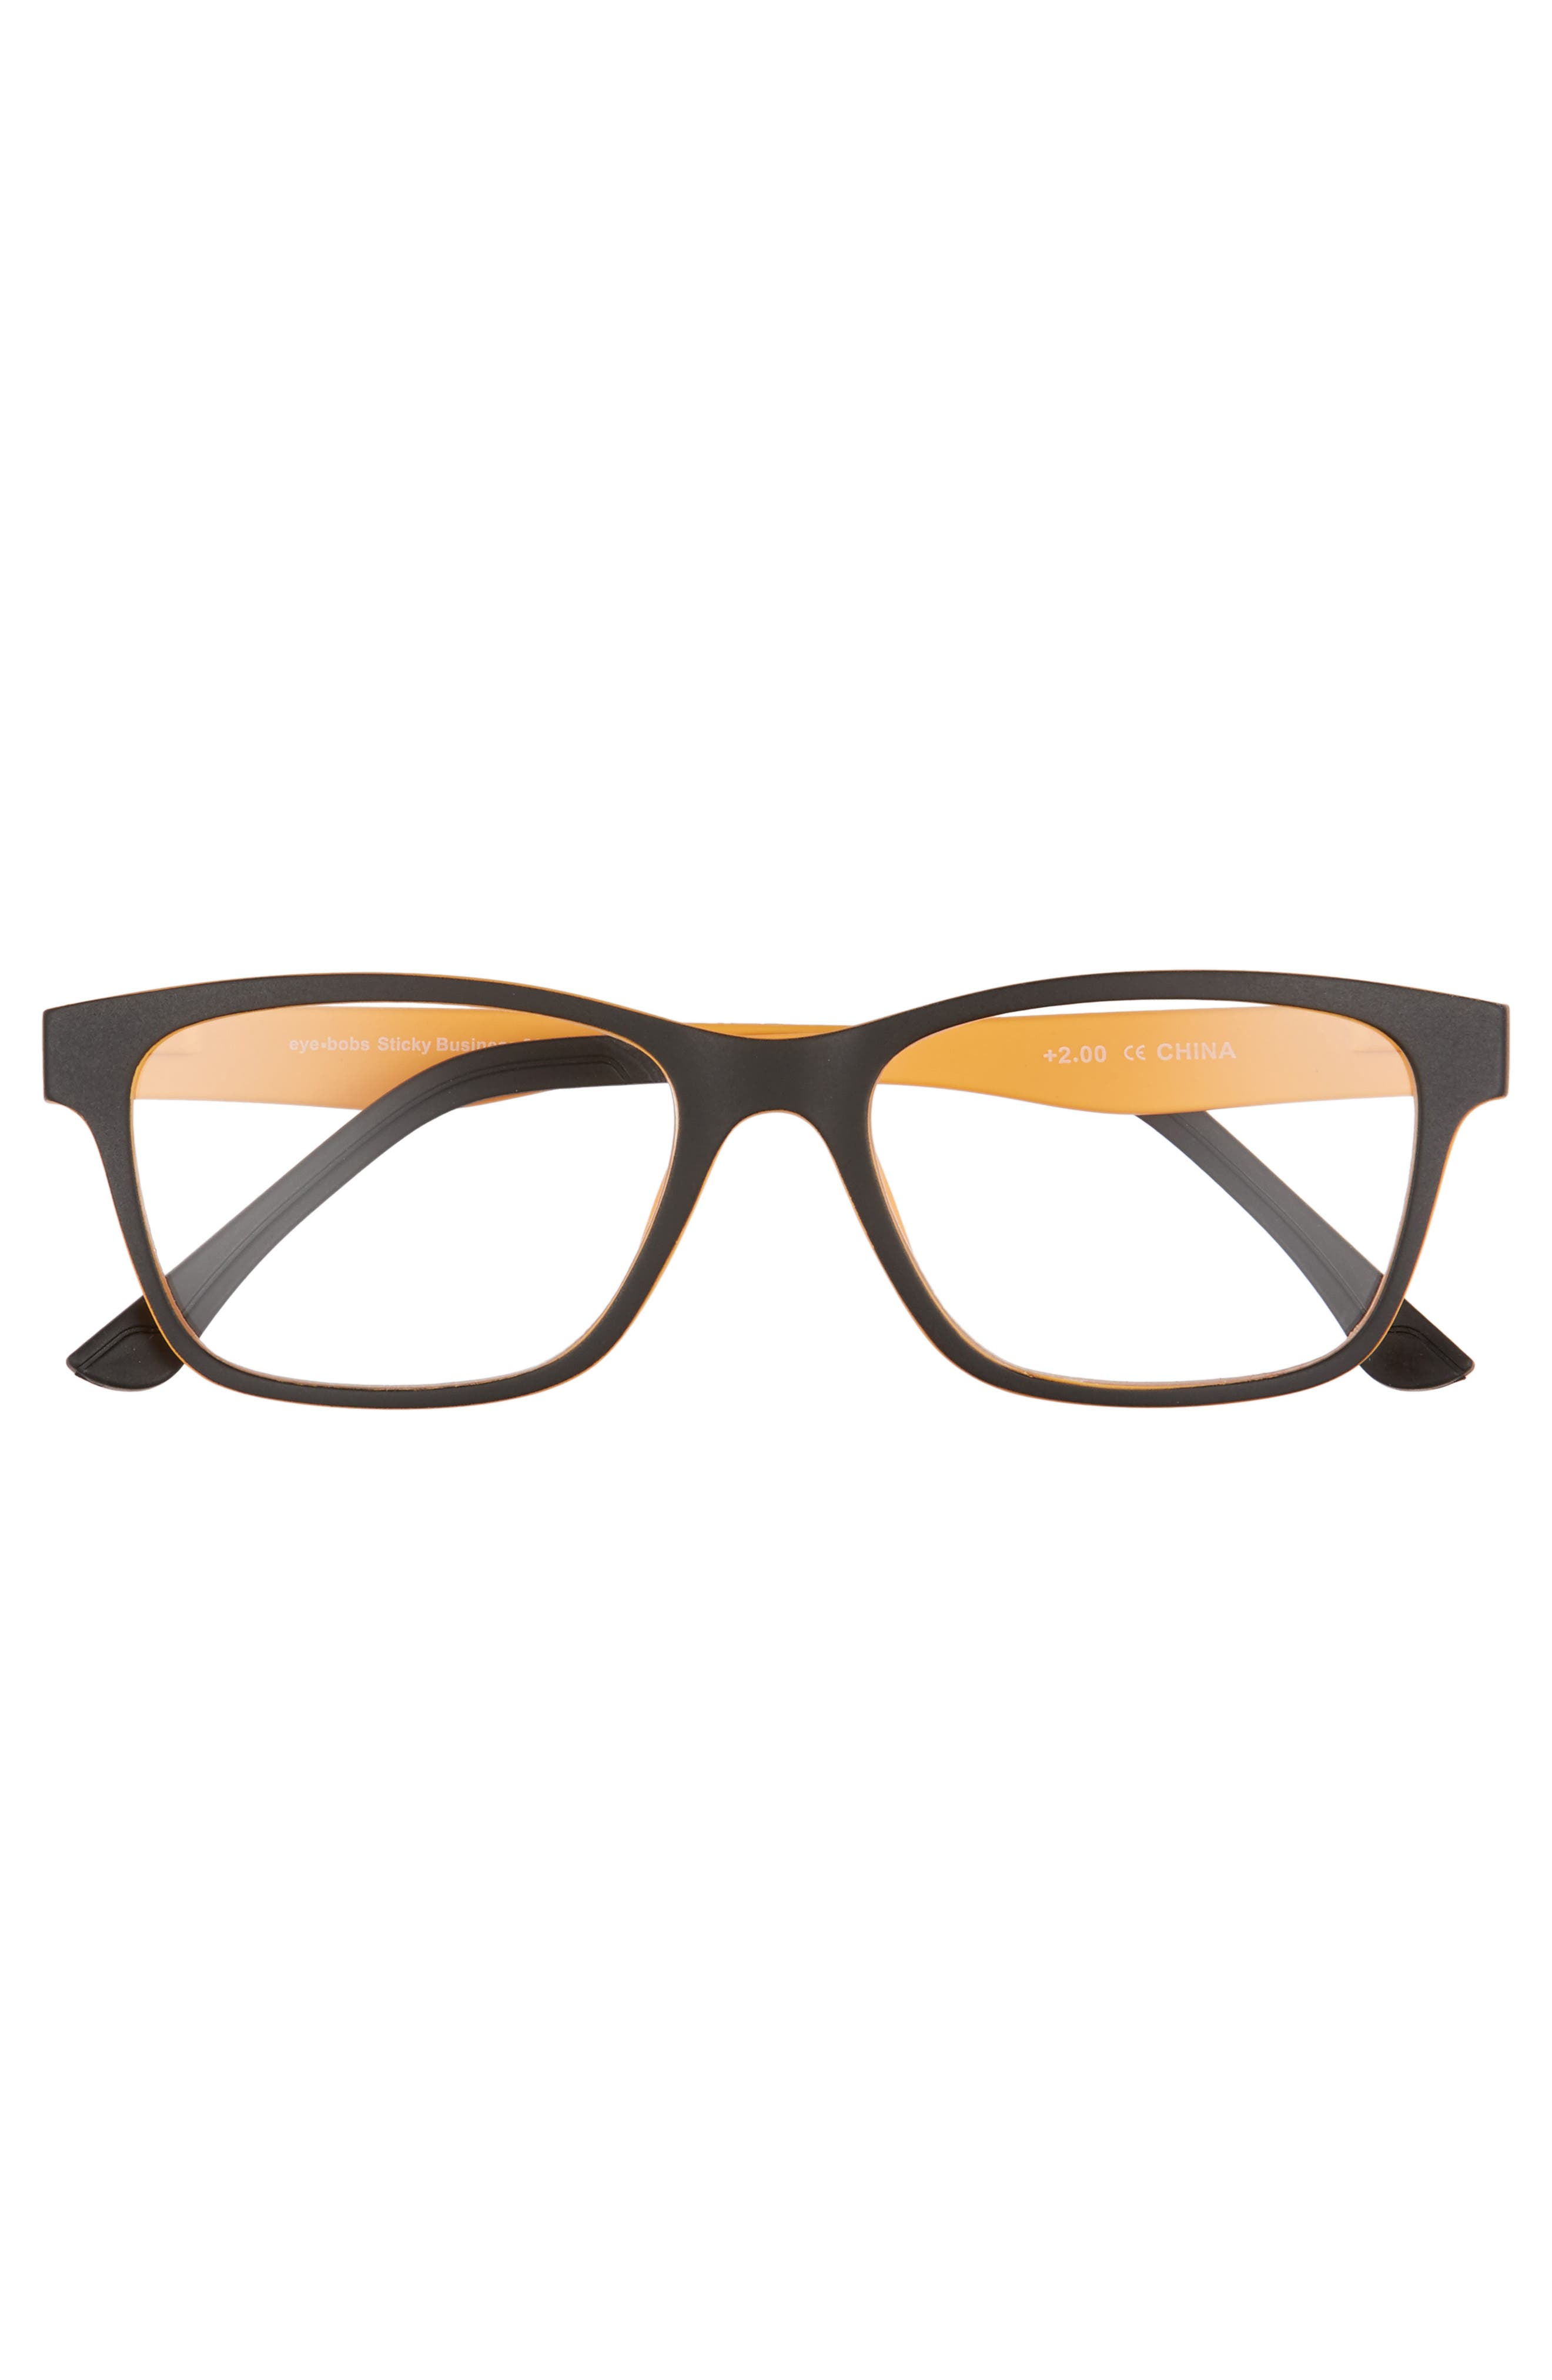 Sticky Business 52mm Reading Glasses with Polarized Sunglass Clip,                             Alternate thumbnail 2, color,                             BLACK WITH YELLOW